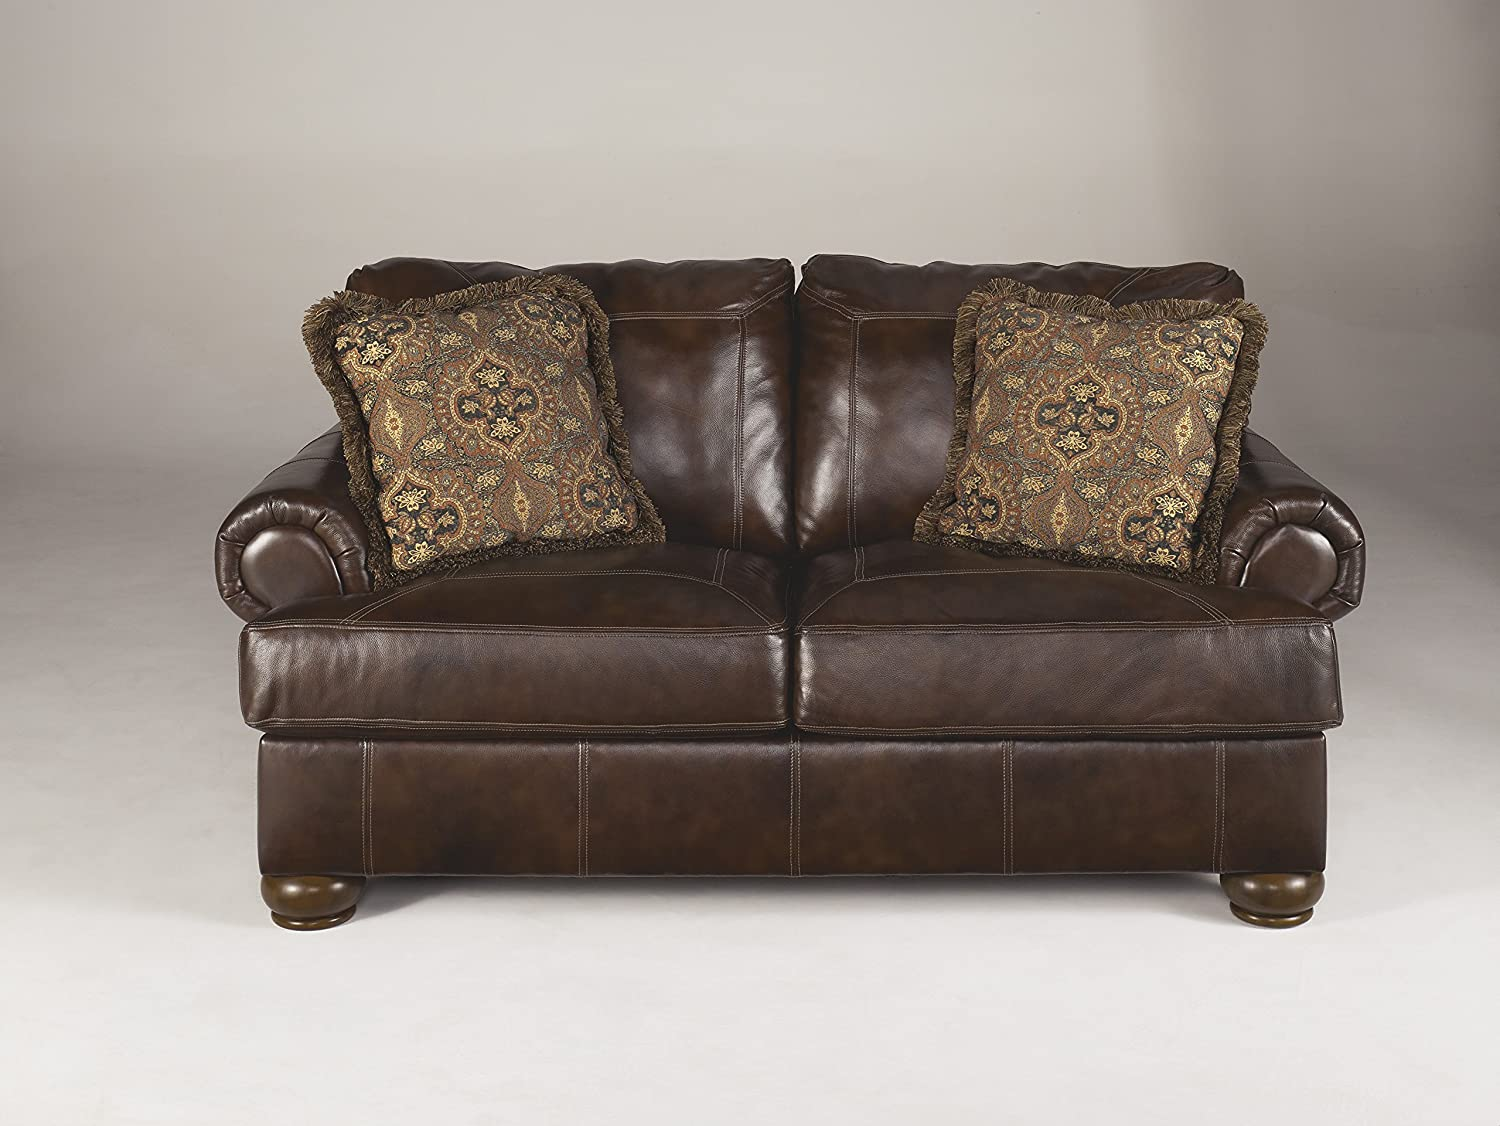 Axiom Walnut Color Vintage Casual Rich Leather Loveseat